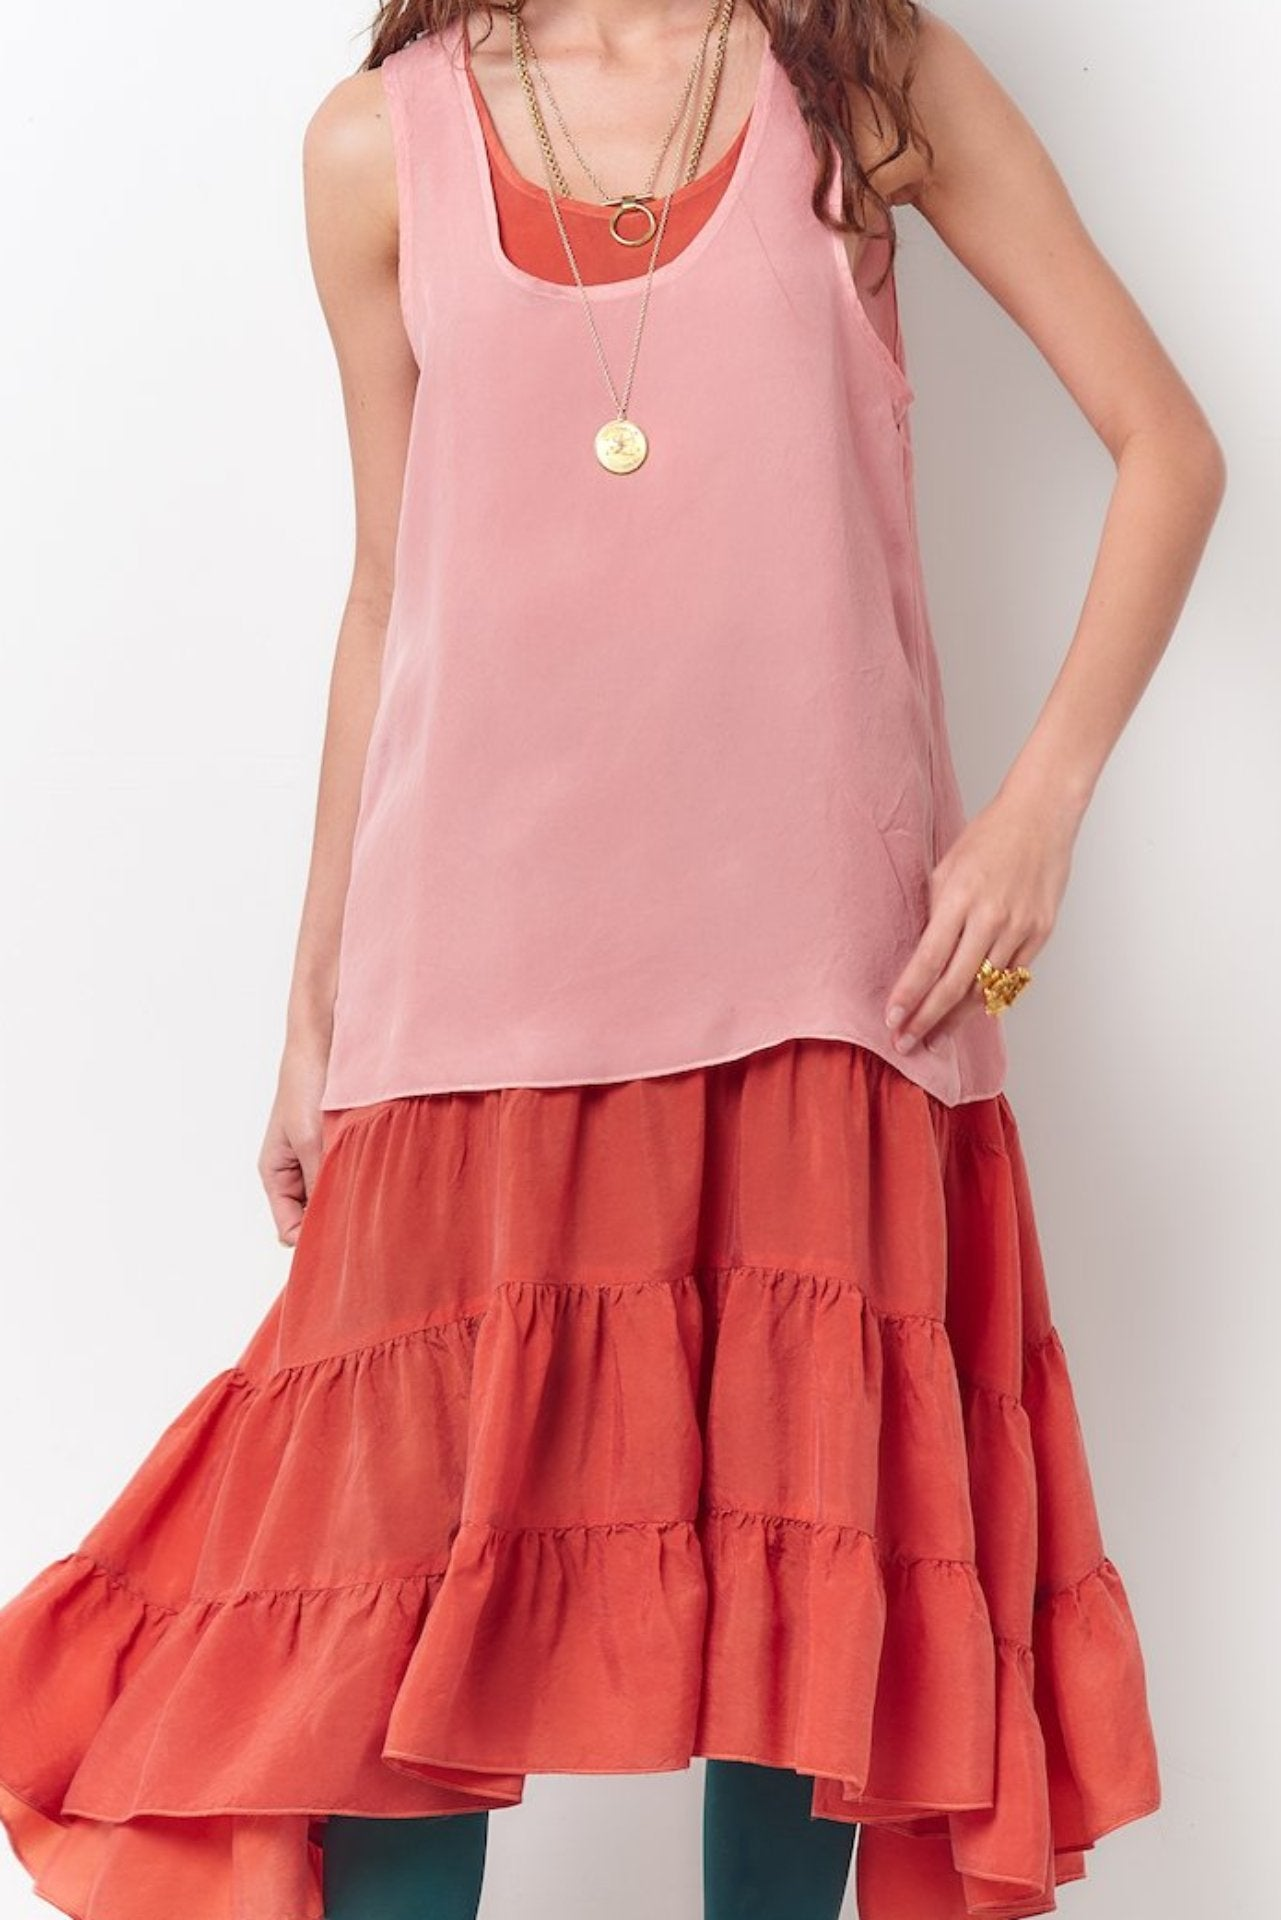 Women's red ruffle dress